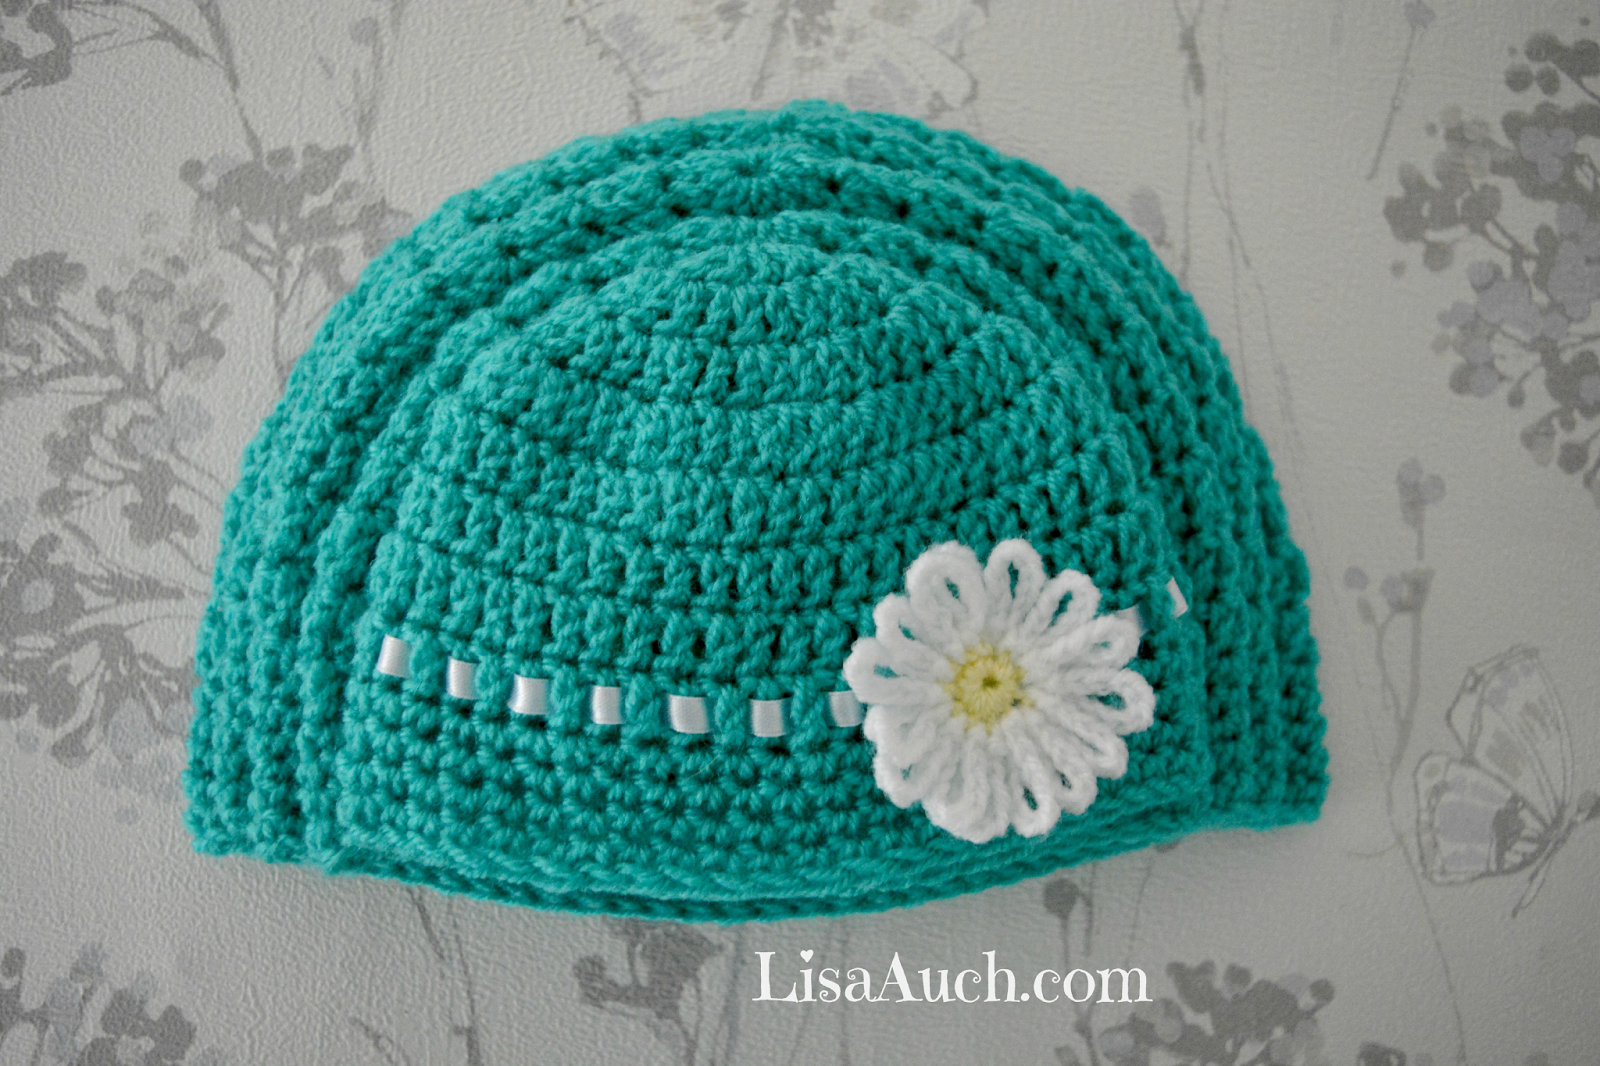 Easy Crochet Flower Hat Pattern : Gallery For > How To Crochet A Baby Hat